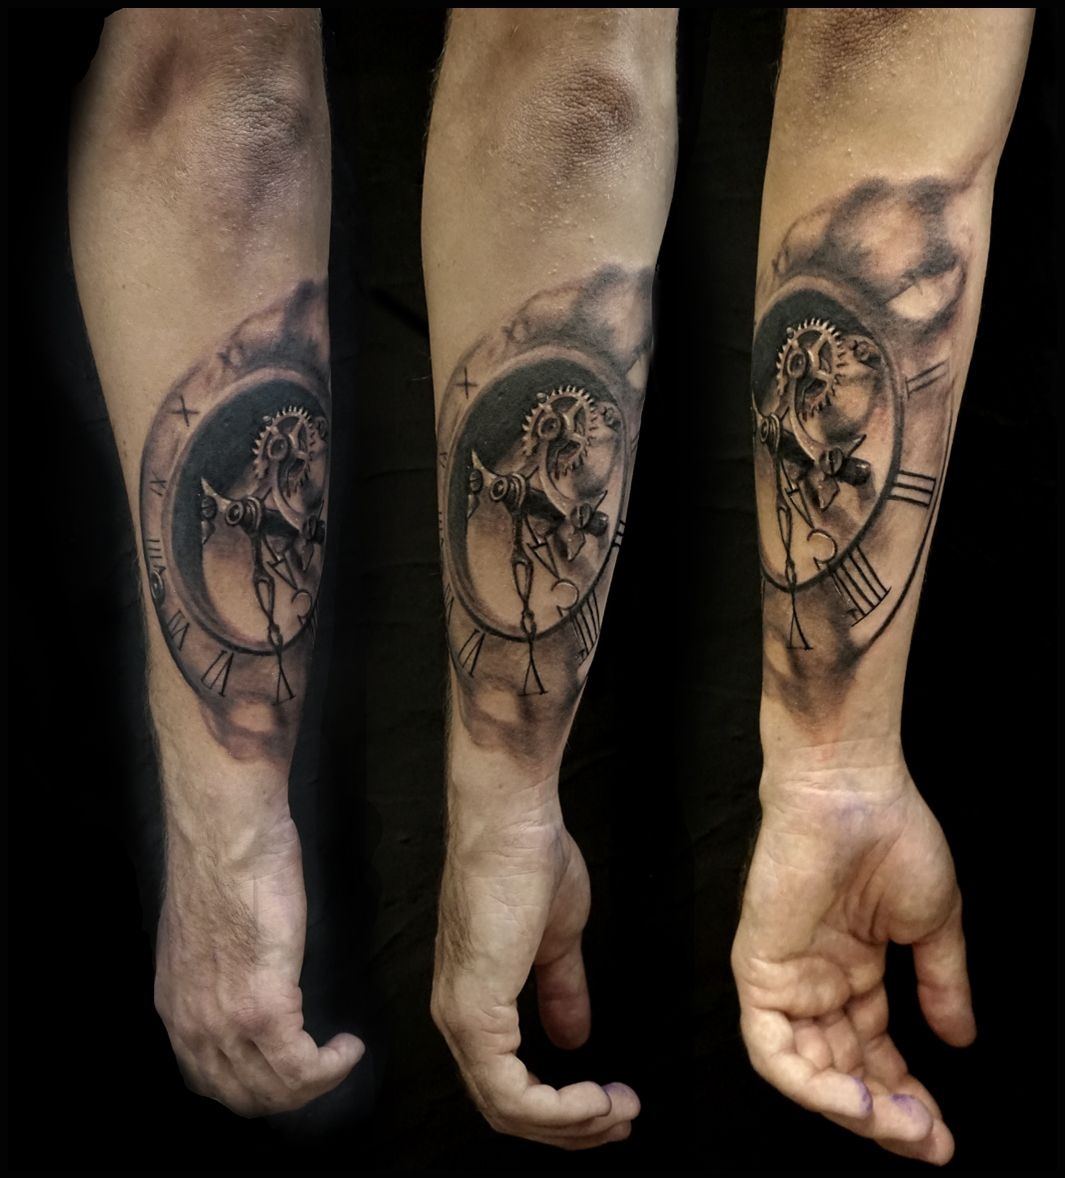 horloge r aliste aquarelle tattoo tatouage tattoo par teddy blackblood tattoo la garde. Black Bedroom Furniture Sets. Home Design Ideas